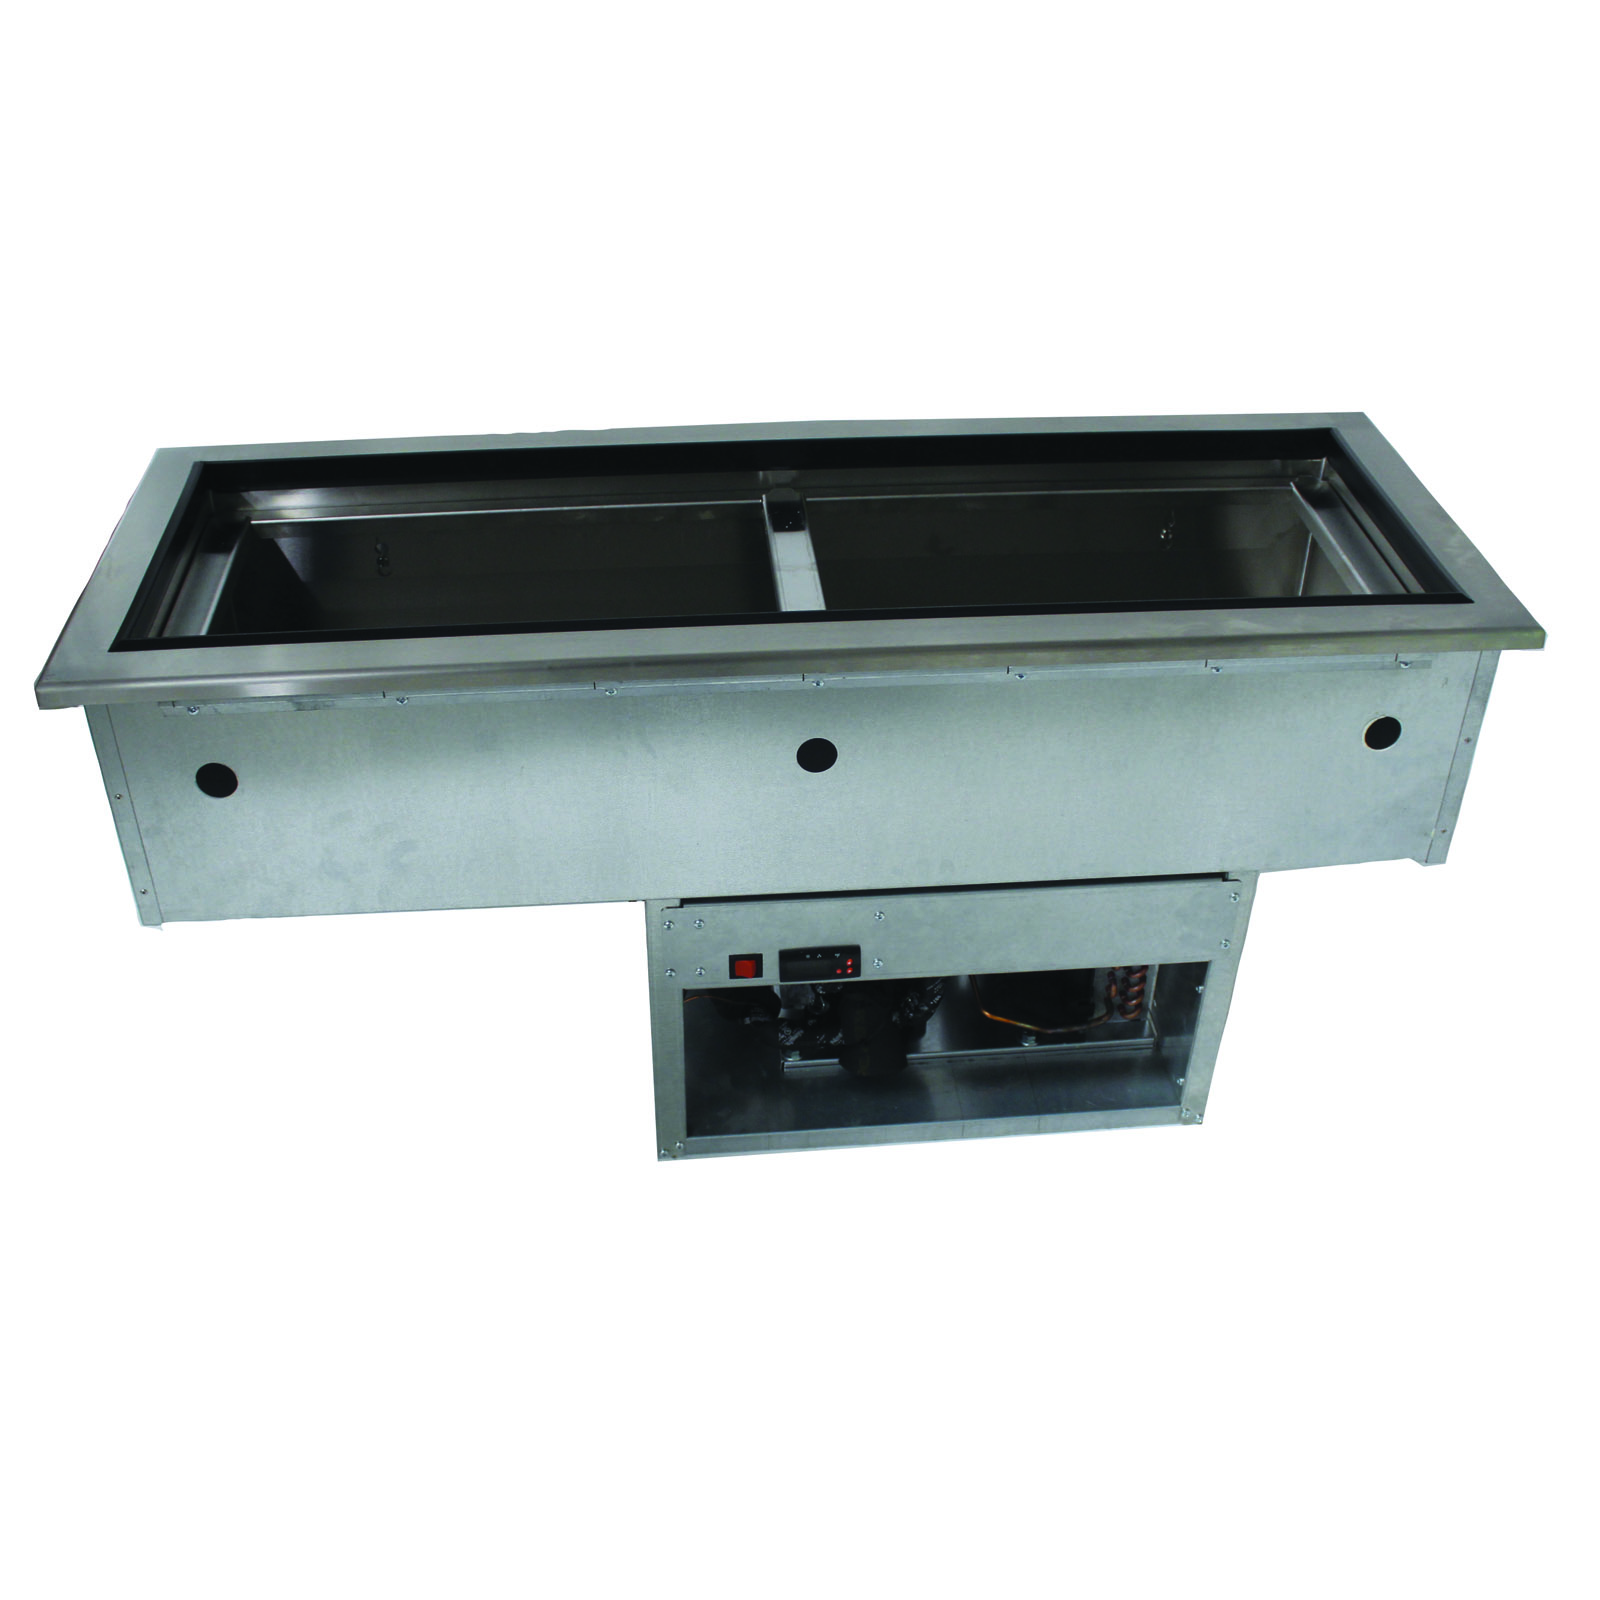 Advance Tabco DISLRCP-2 cold food well unit, drop-in, refrigerated